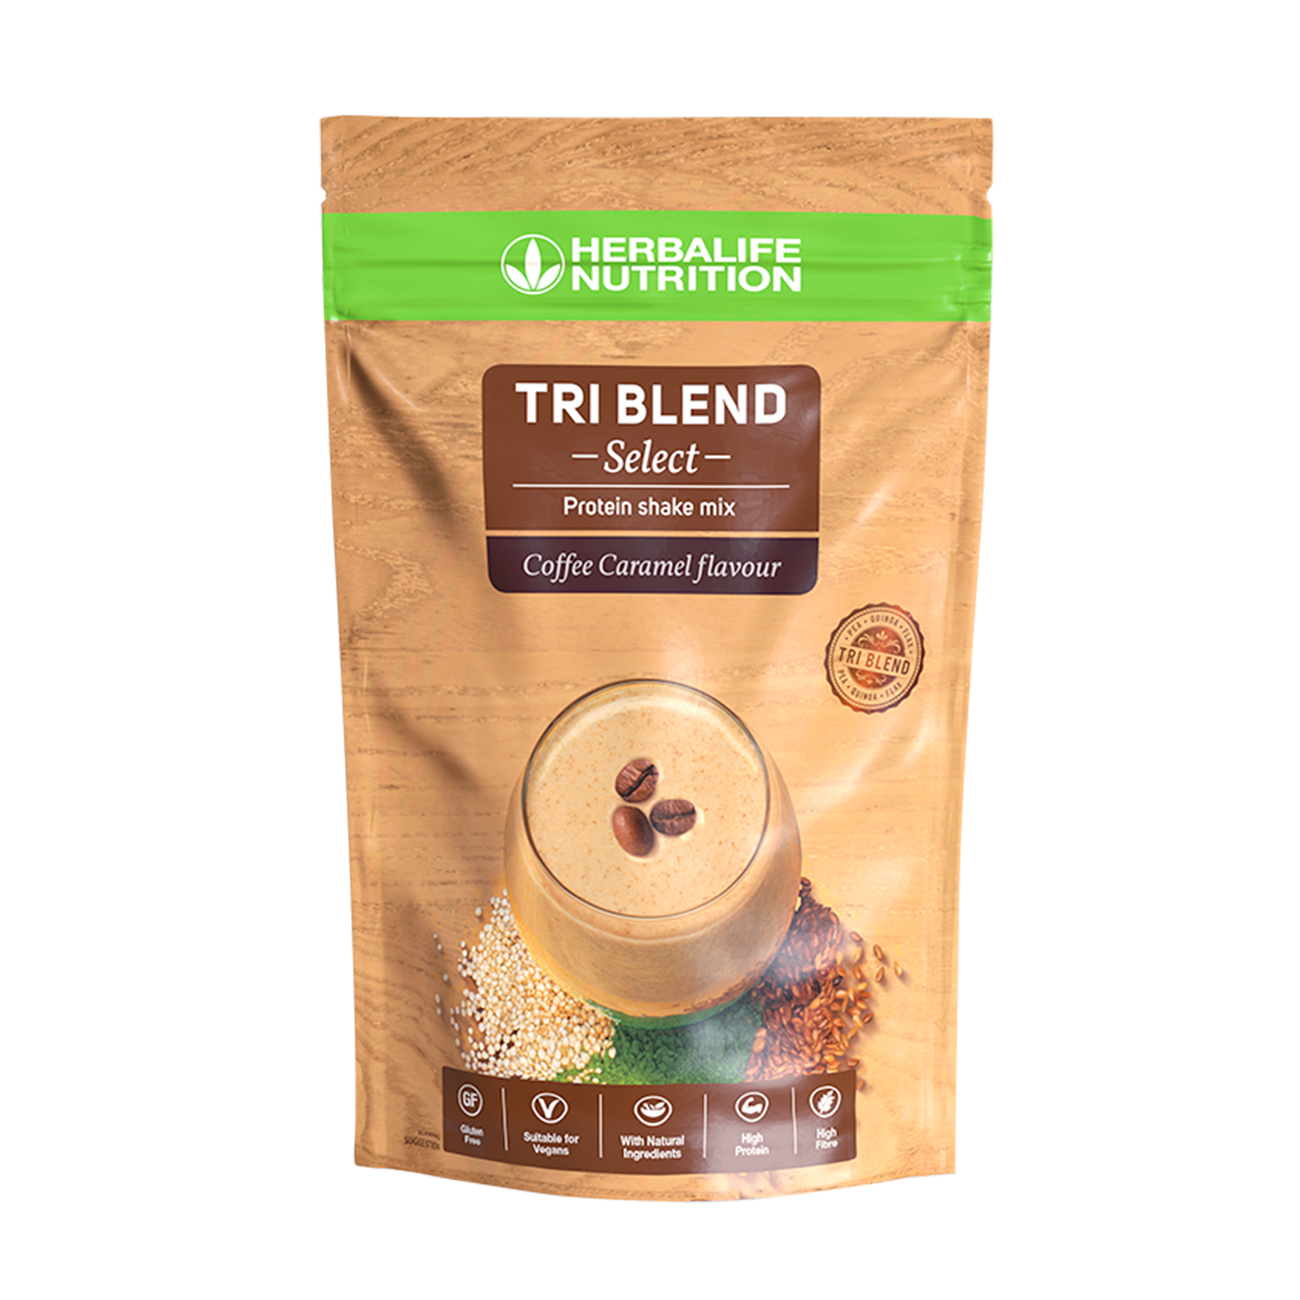 Tri Blend Select Shake mix proteic vegan Coffee Caramel product shot